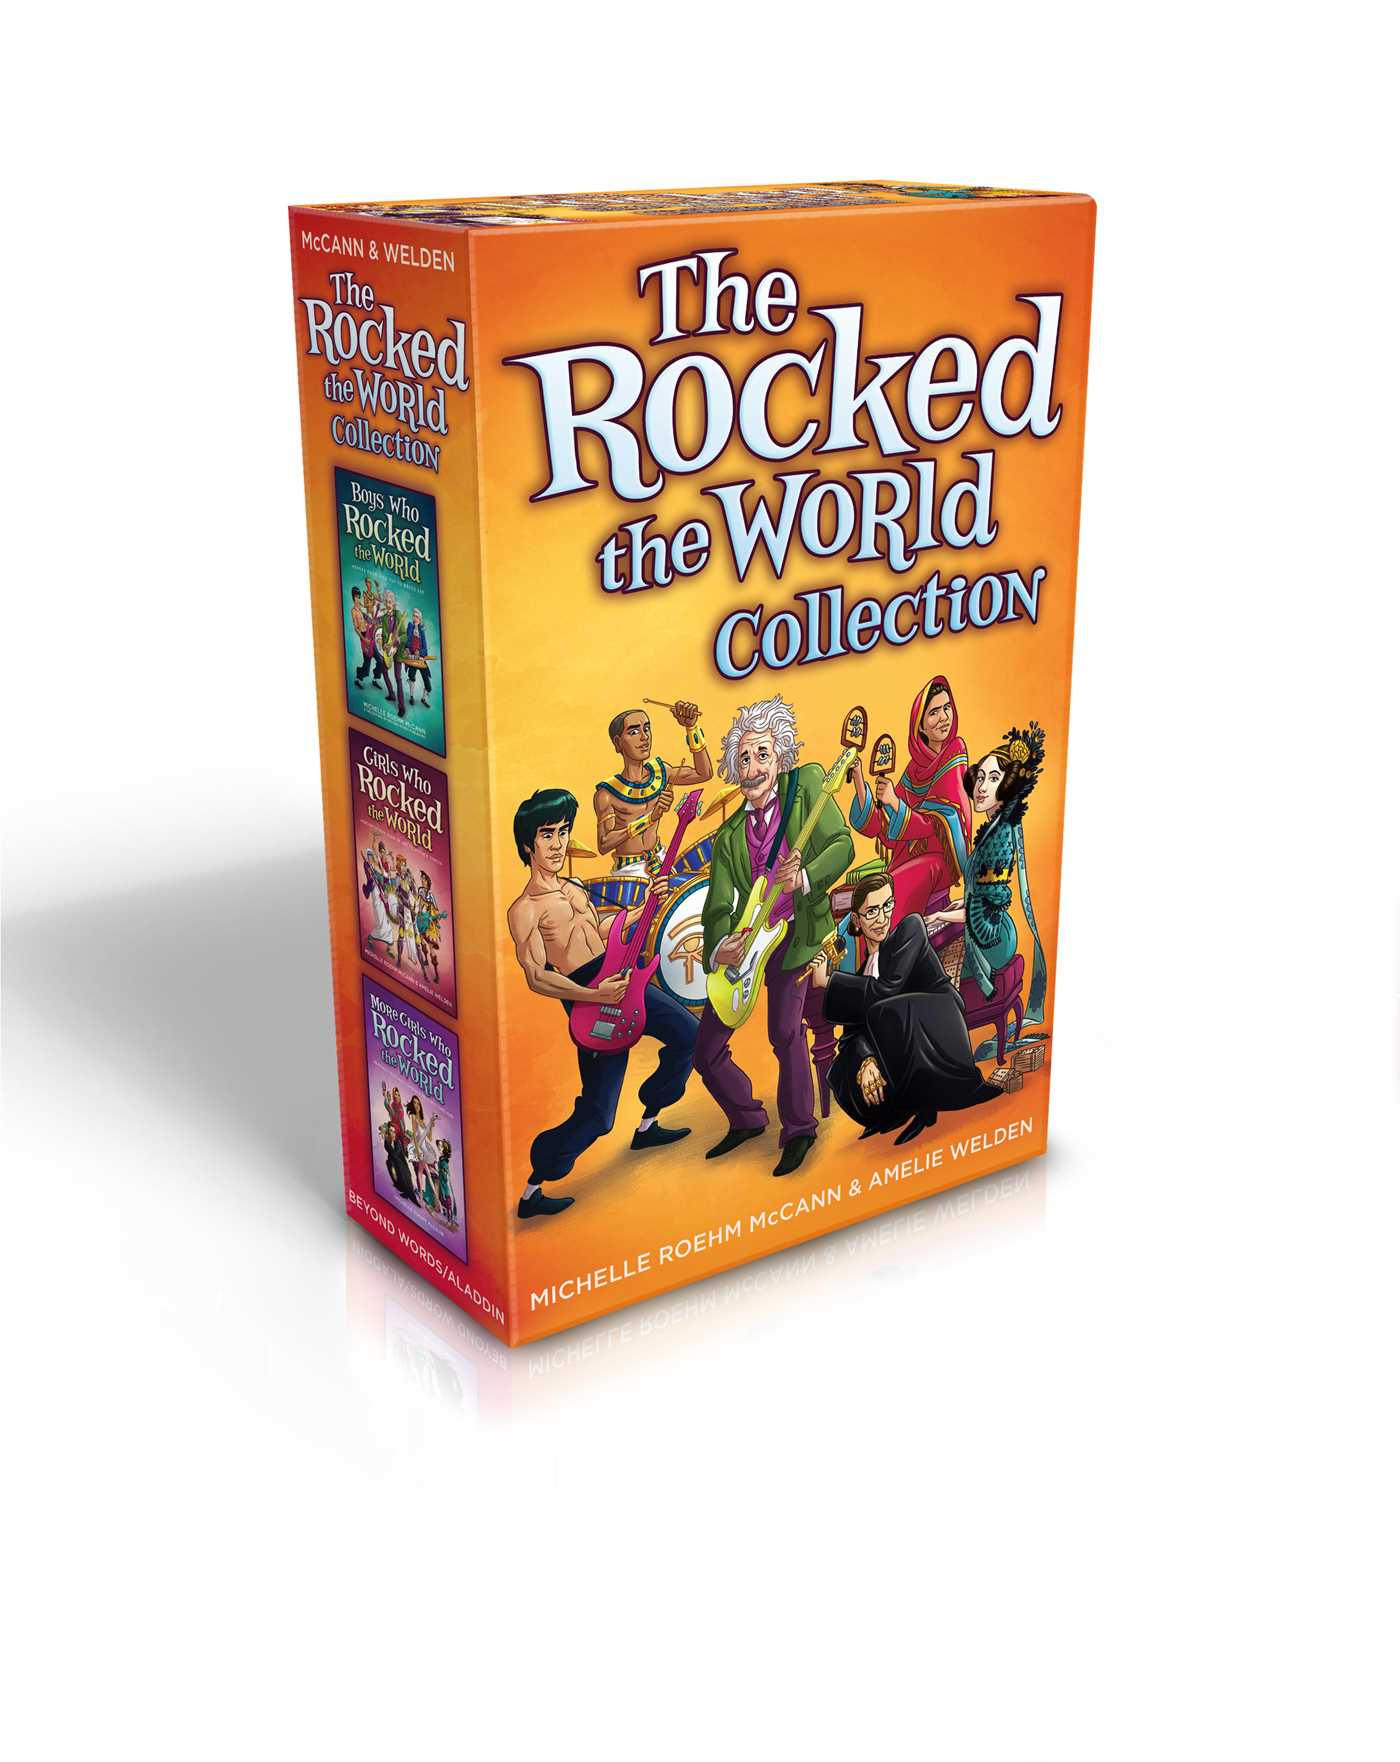 The rocked the world collection 9781582706795 hr